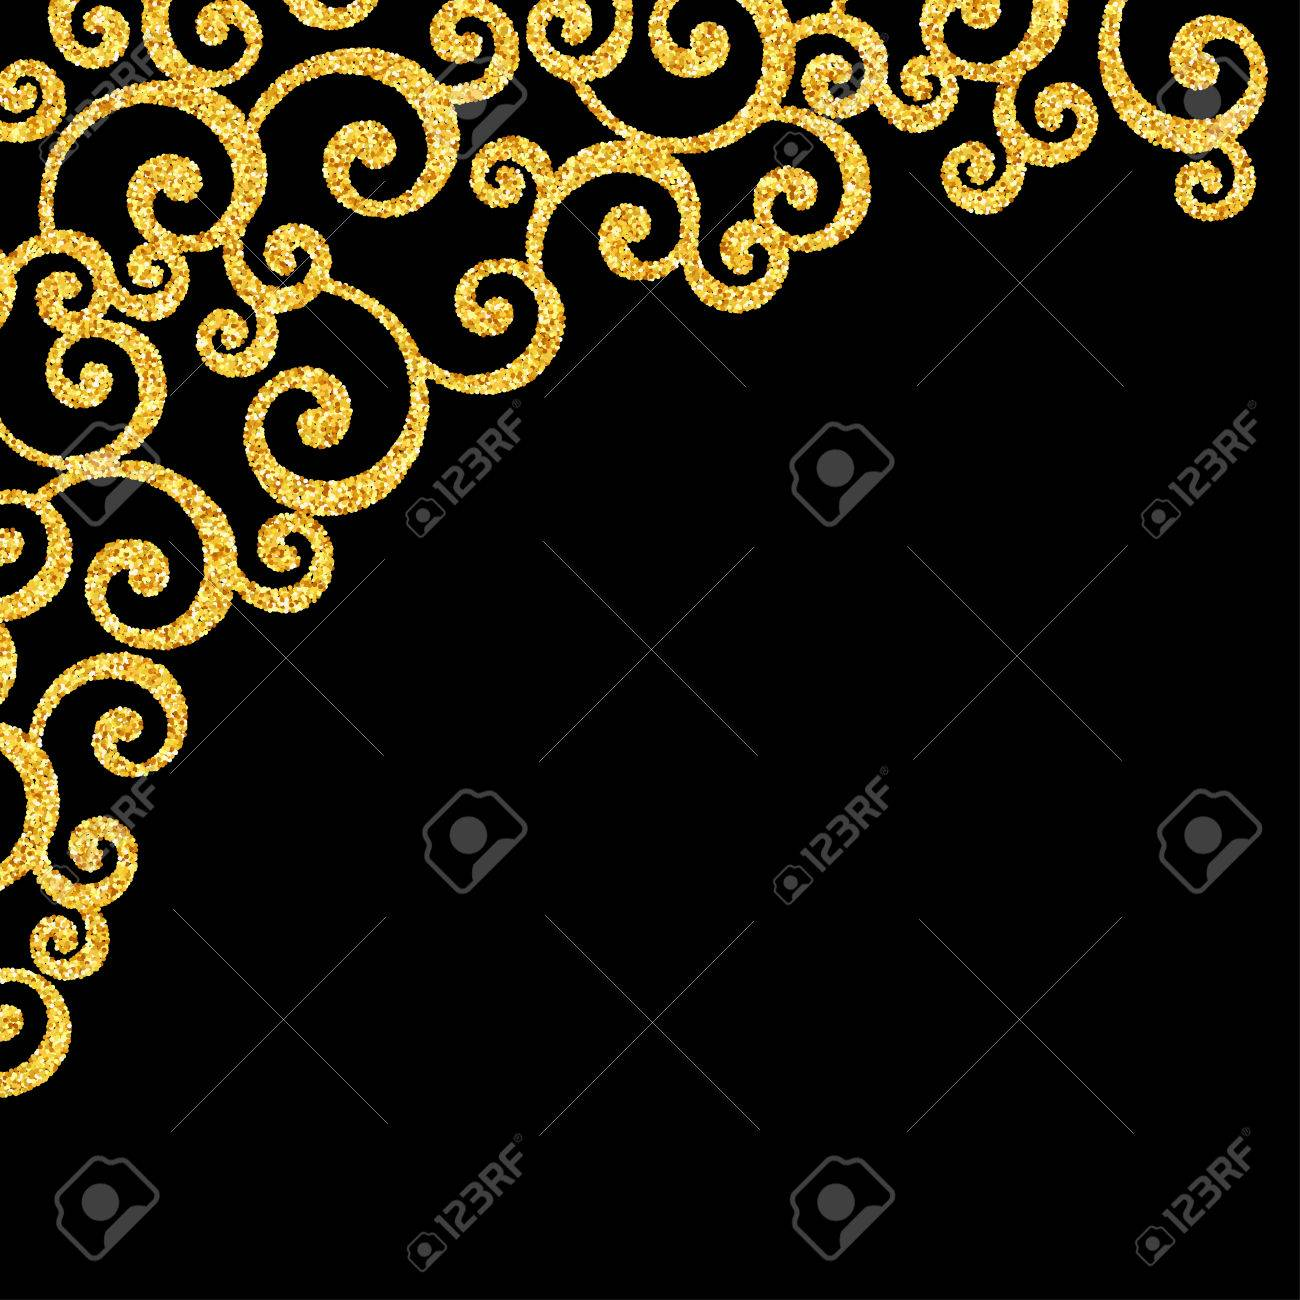 Gold glitter floral curl invitation card with swirl damask pattern gold glitter floral curl invitation card with swirl damask pattern on black background stock vector stopboris